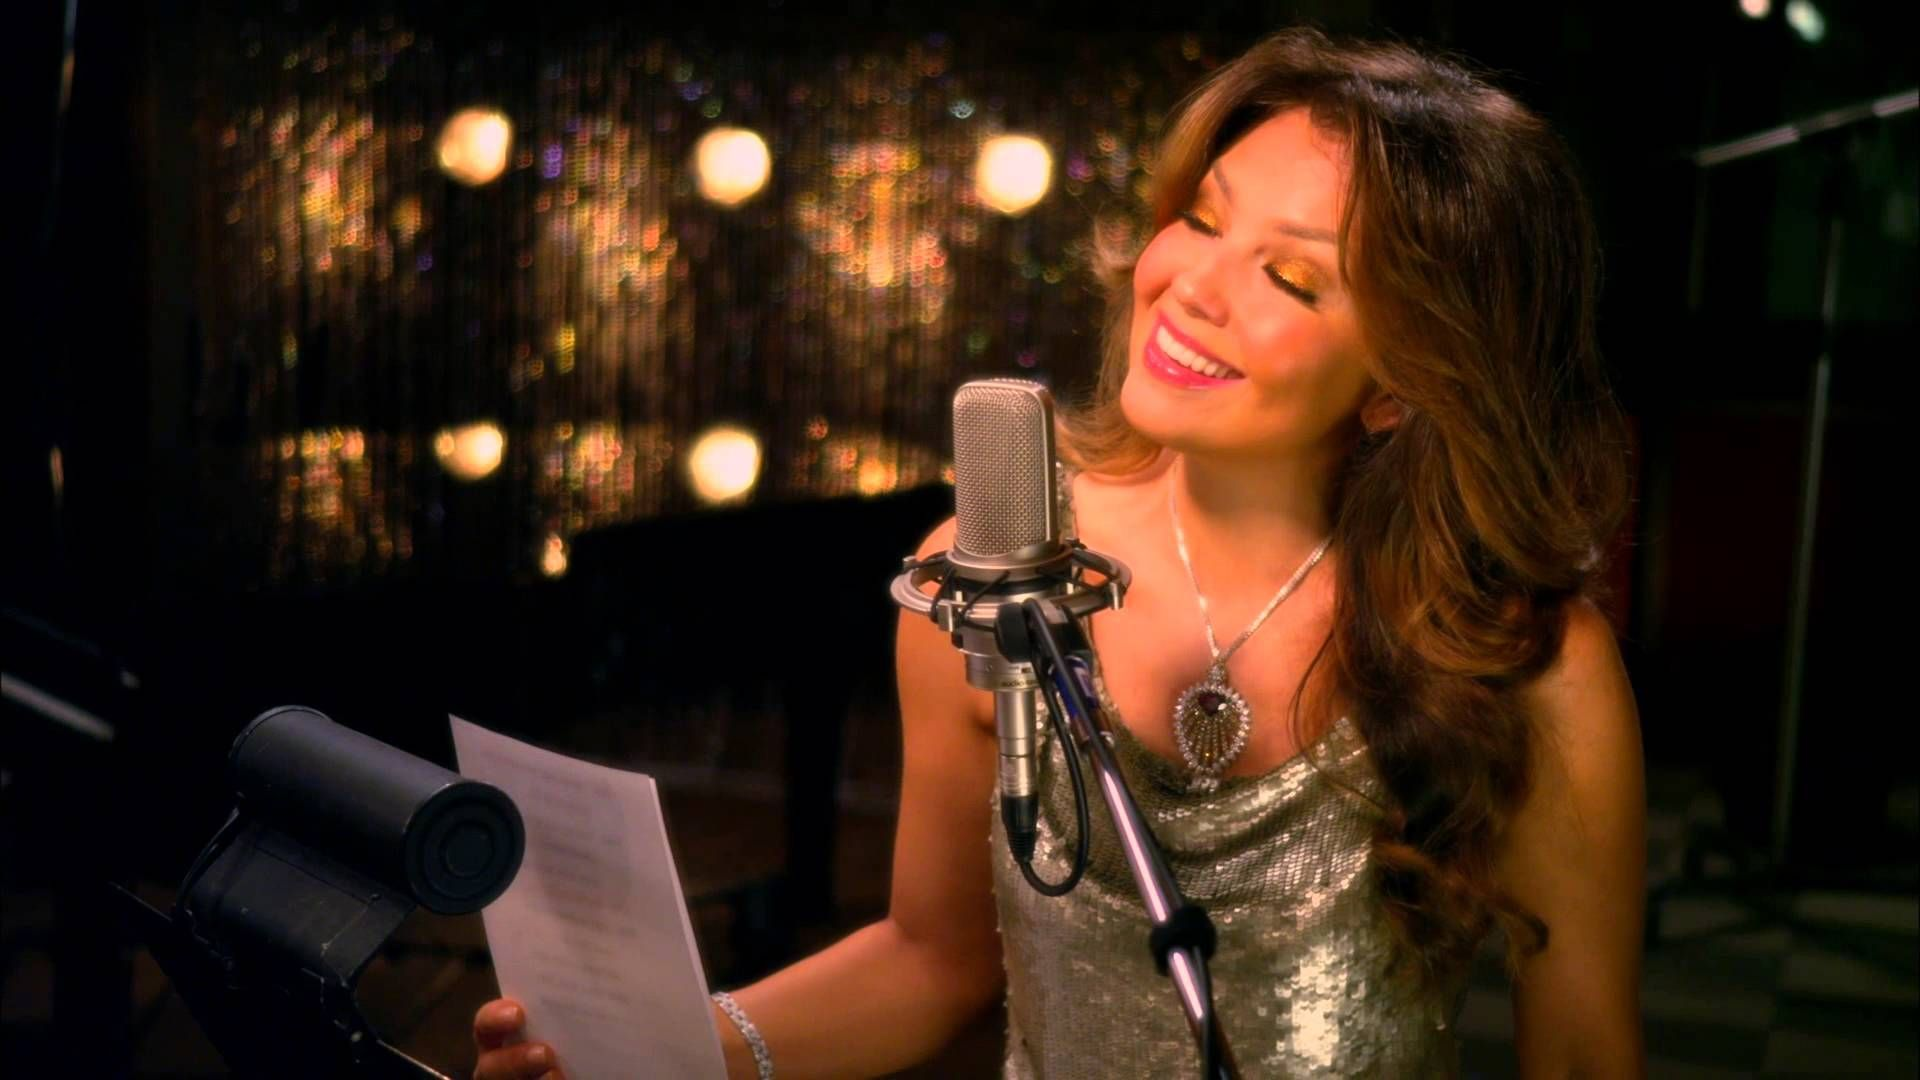 Music video by Tony Bennett duet with Thalía performing The Way You